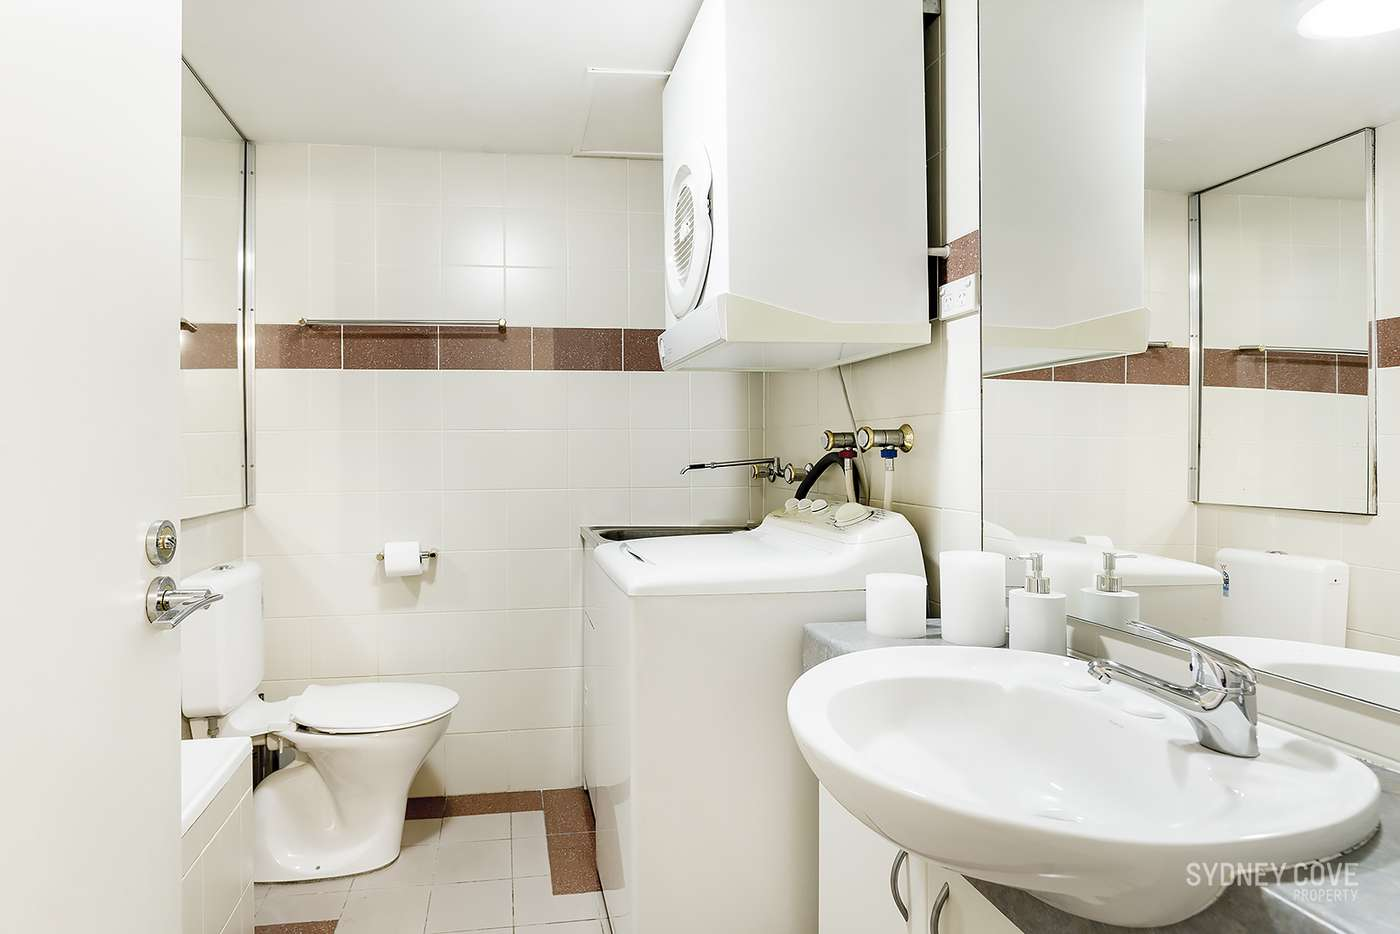 Sixth view of Homely apartment listing, 1606/199 Castlereagh Street, Sydney NSW 2000